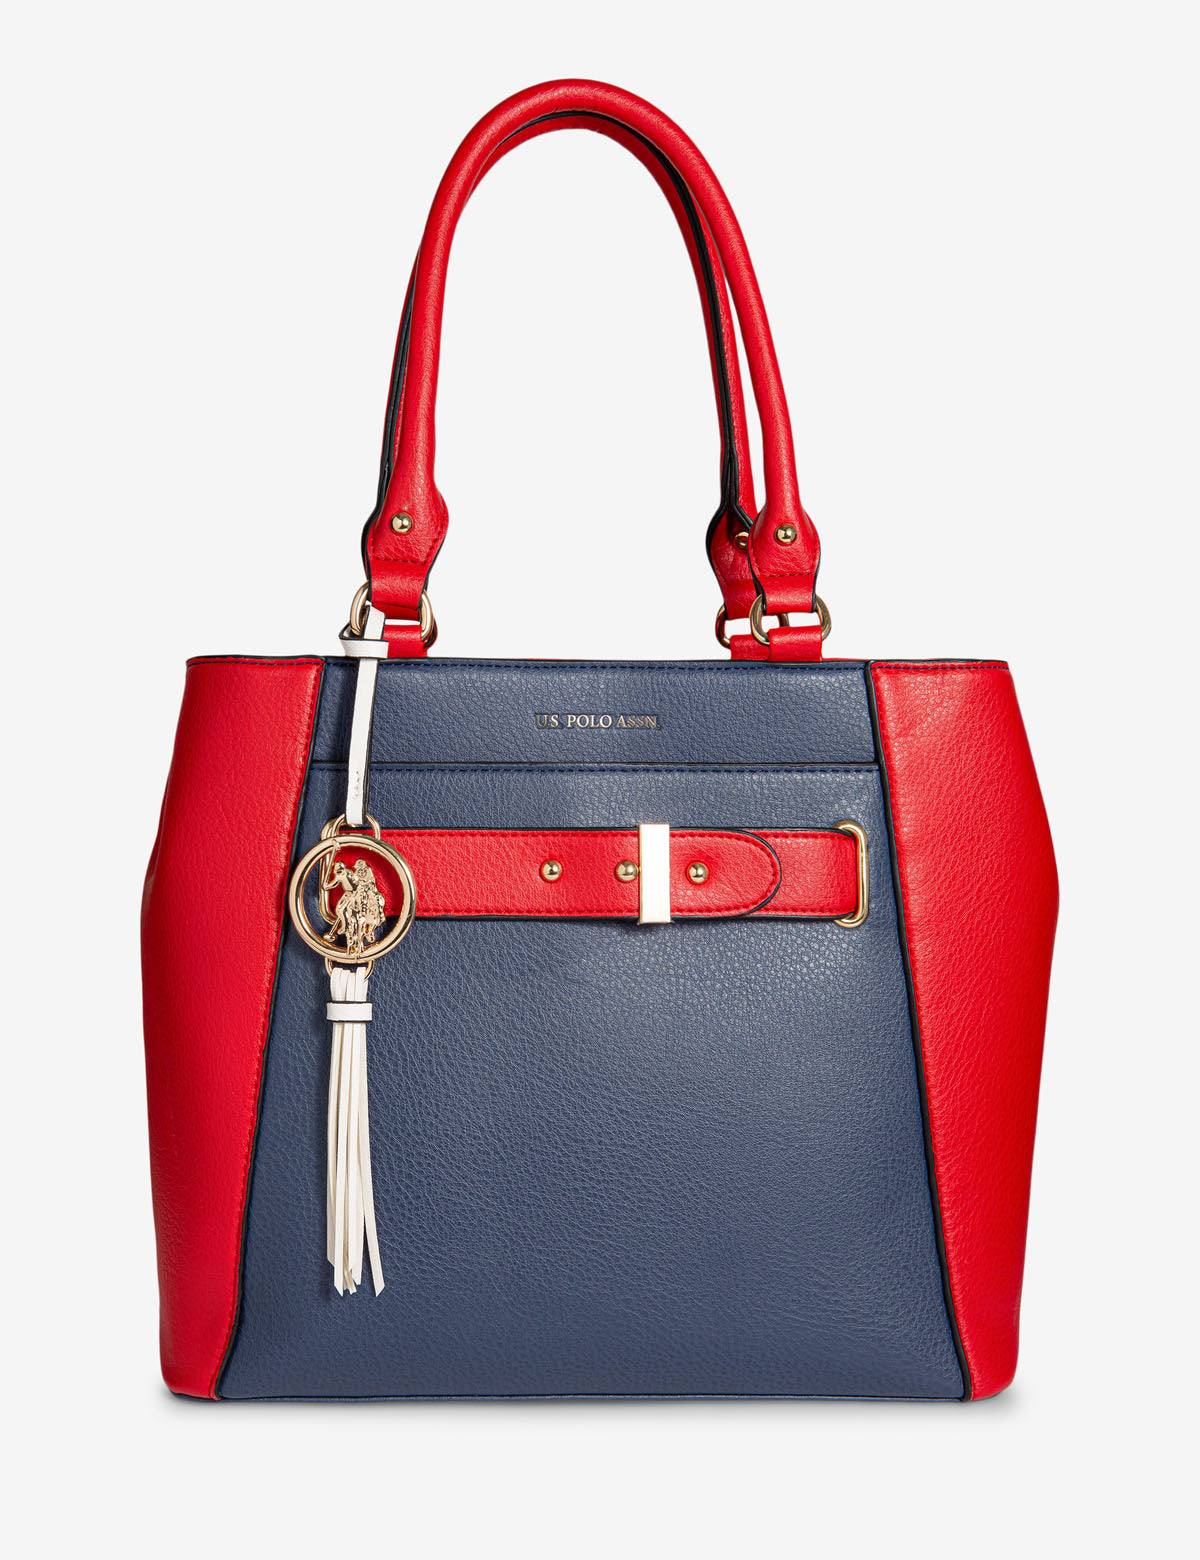 COLORBLOCK SATCHEL - U.S. Polo Assn.